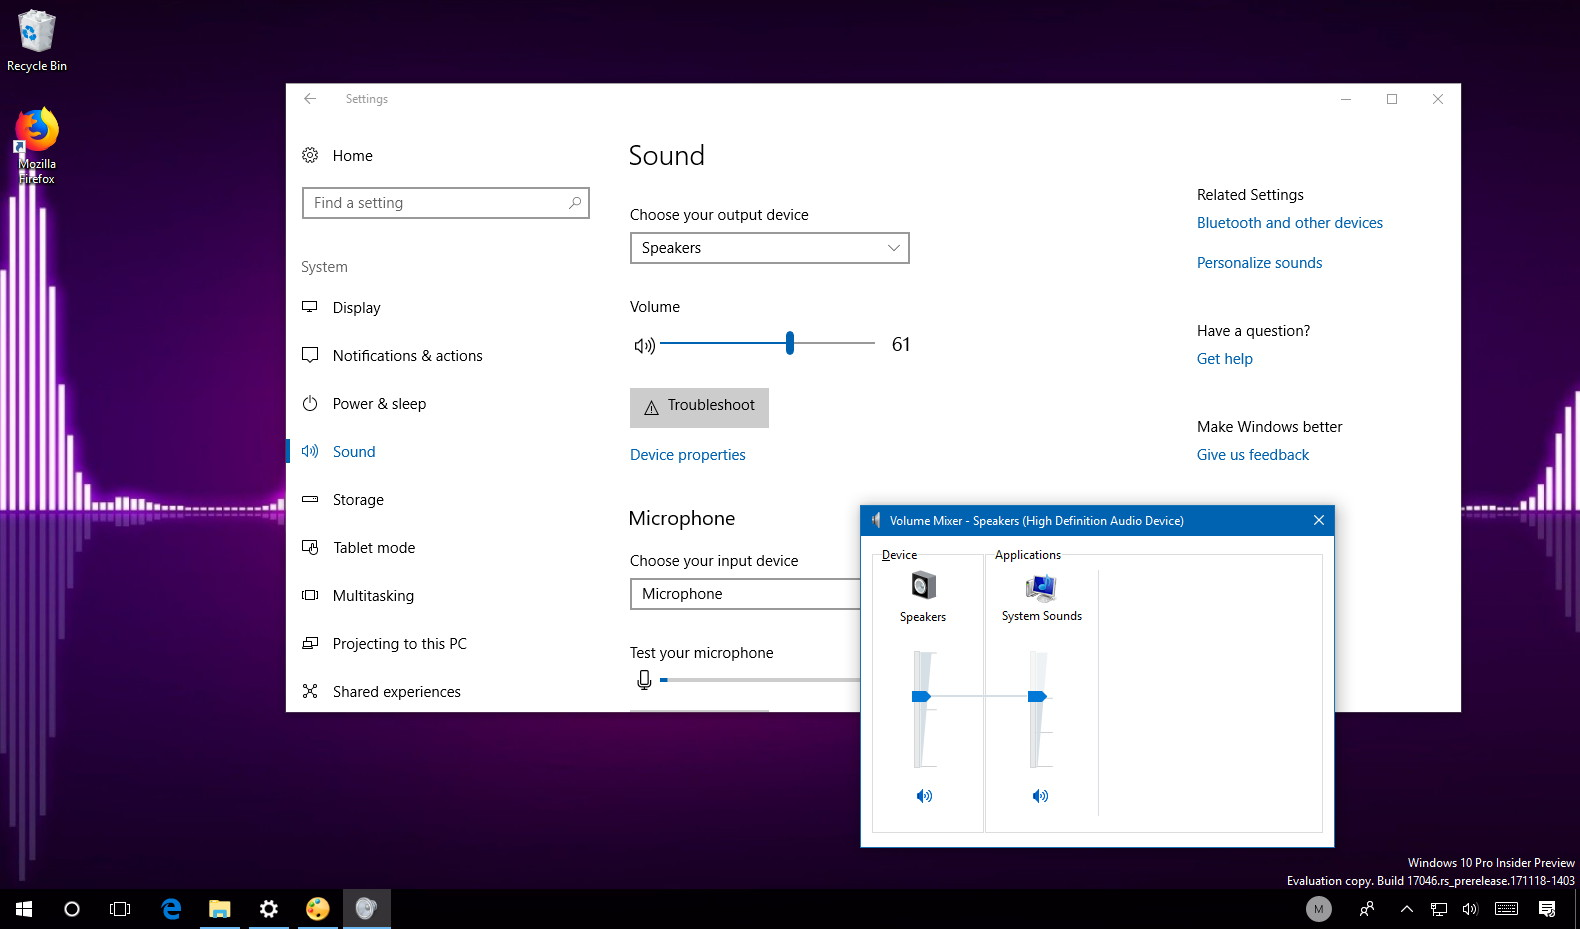 Fix sound problems on Windows 10